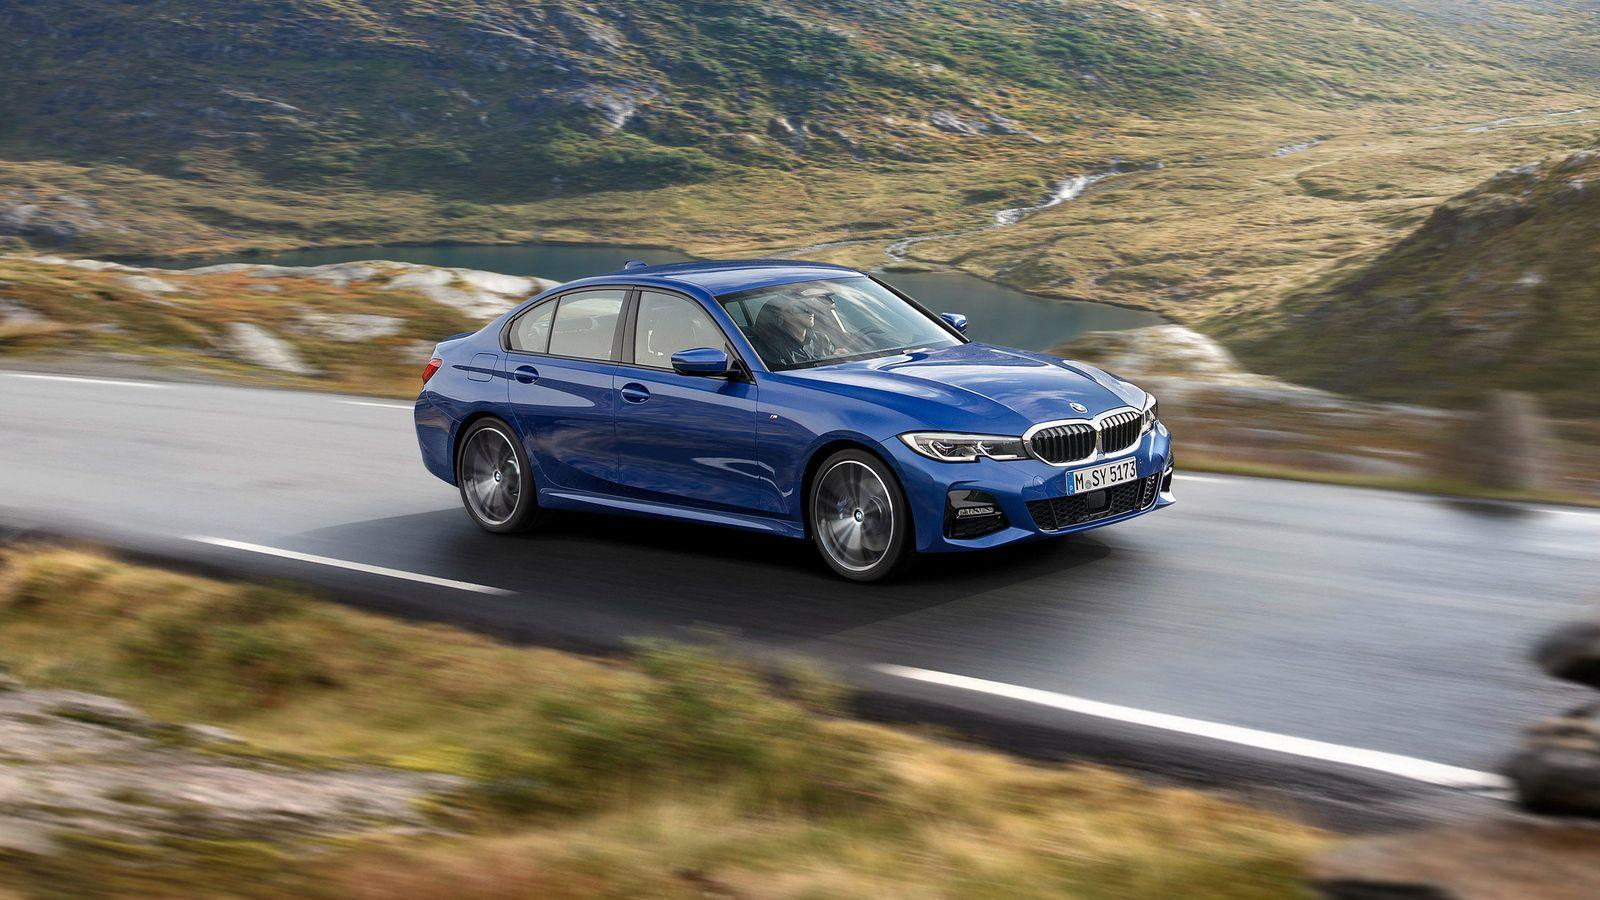 2019 BMW 3 Series gets trick chassis and iDrive tech, $40,200 price